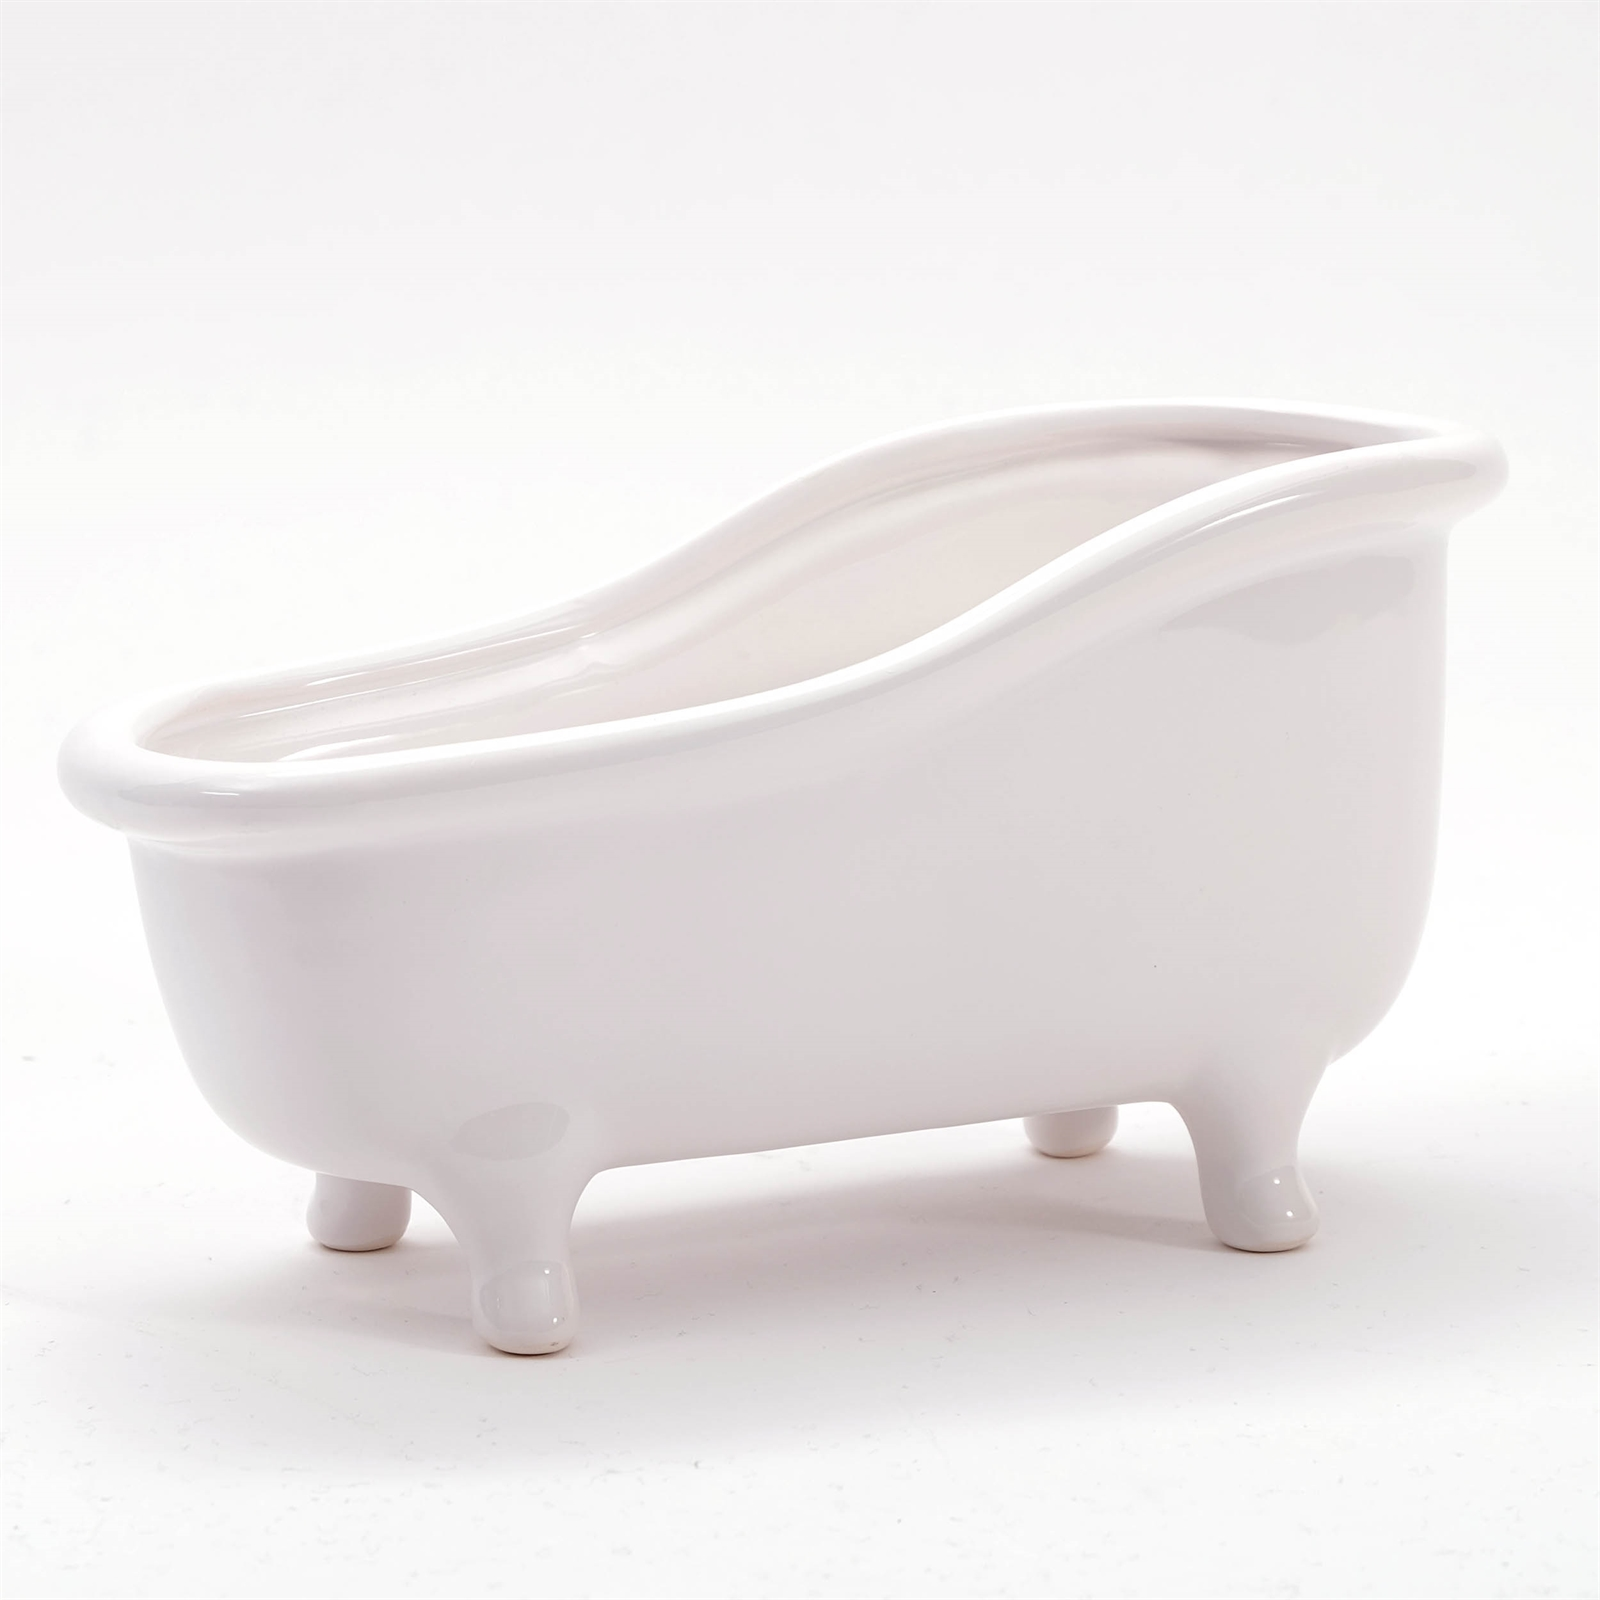 home decor bath tub white ceramic soap dish fruit bowl plant flower pot ebay